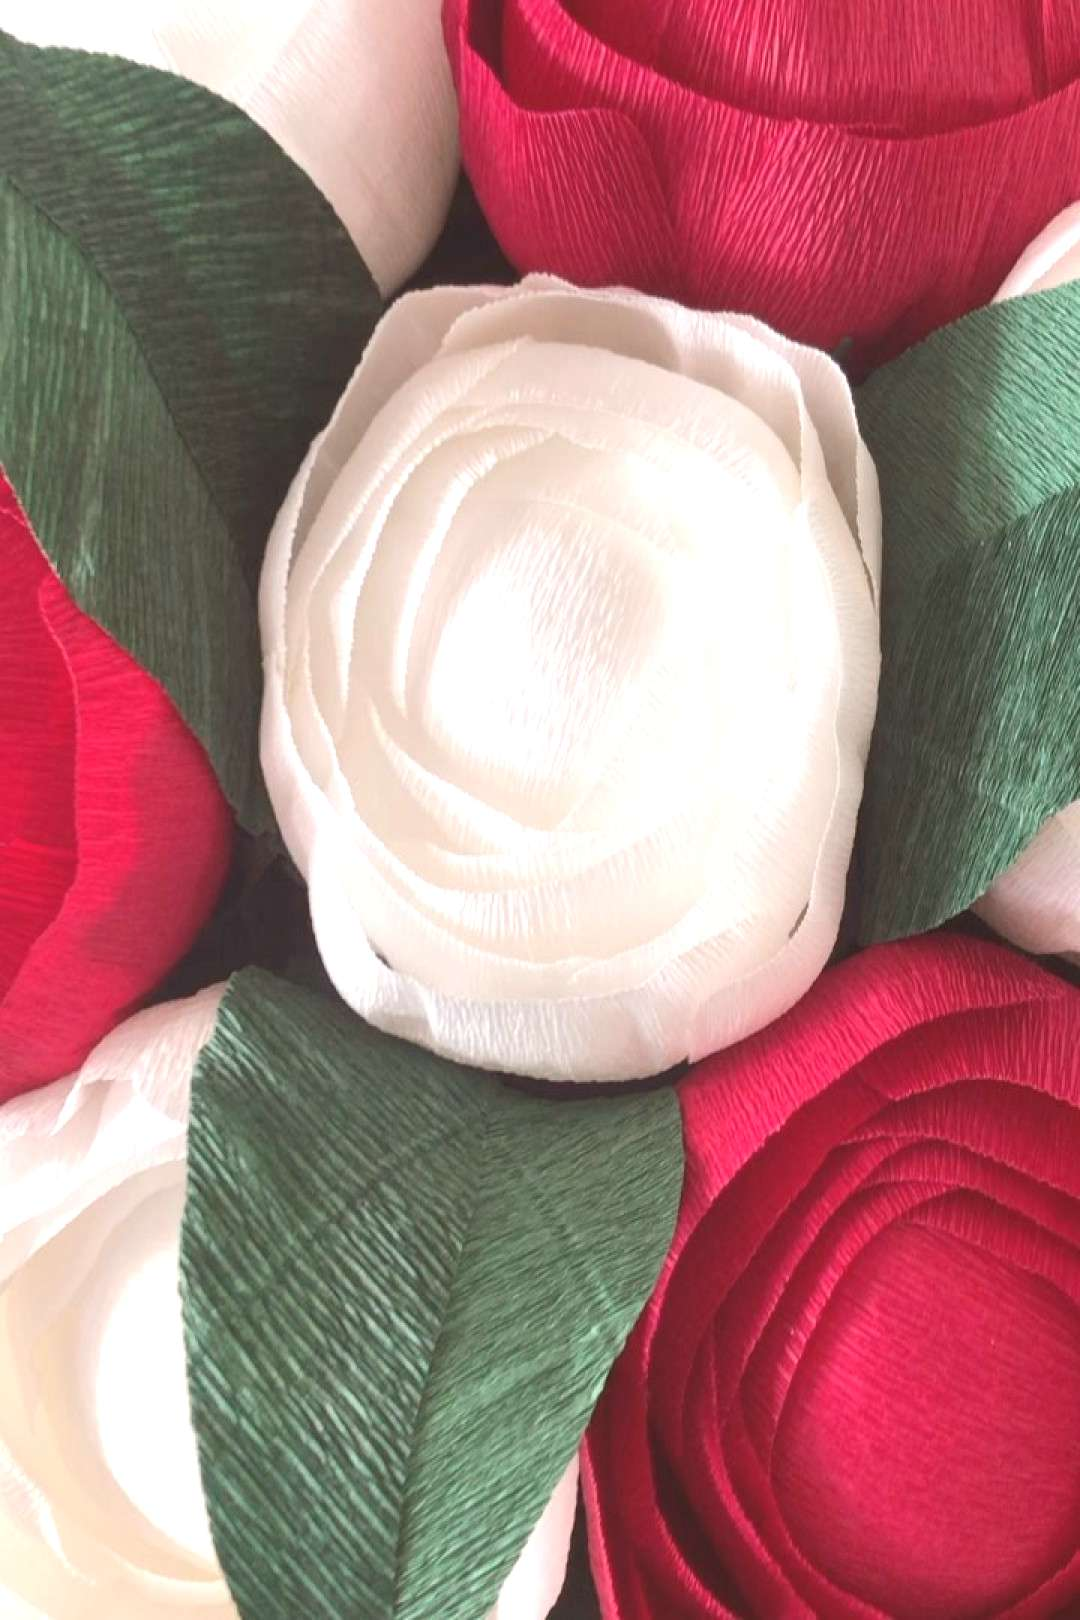 A red and white combination today of our handmade ranunculus flow